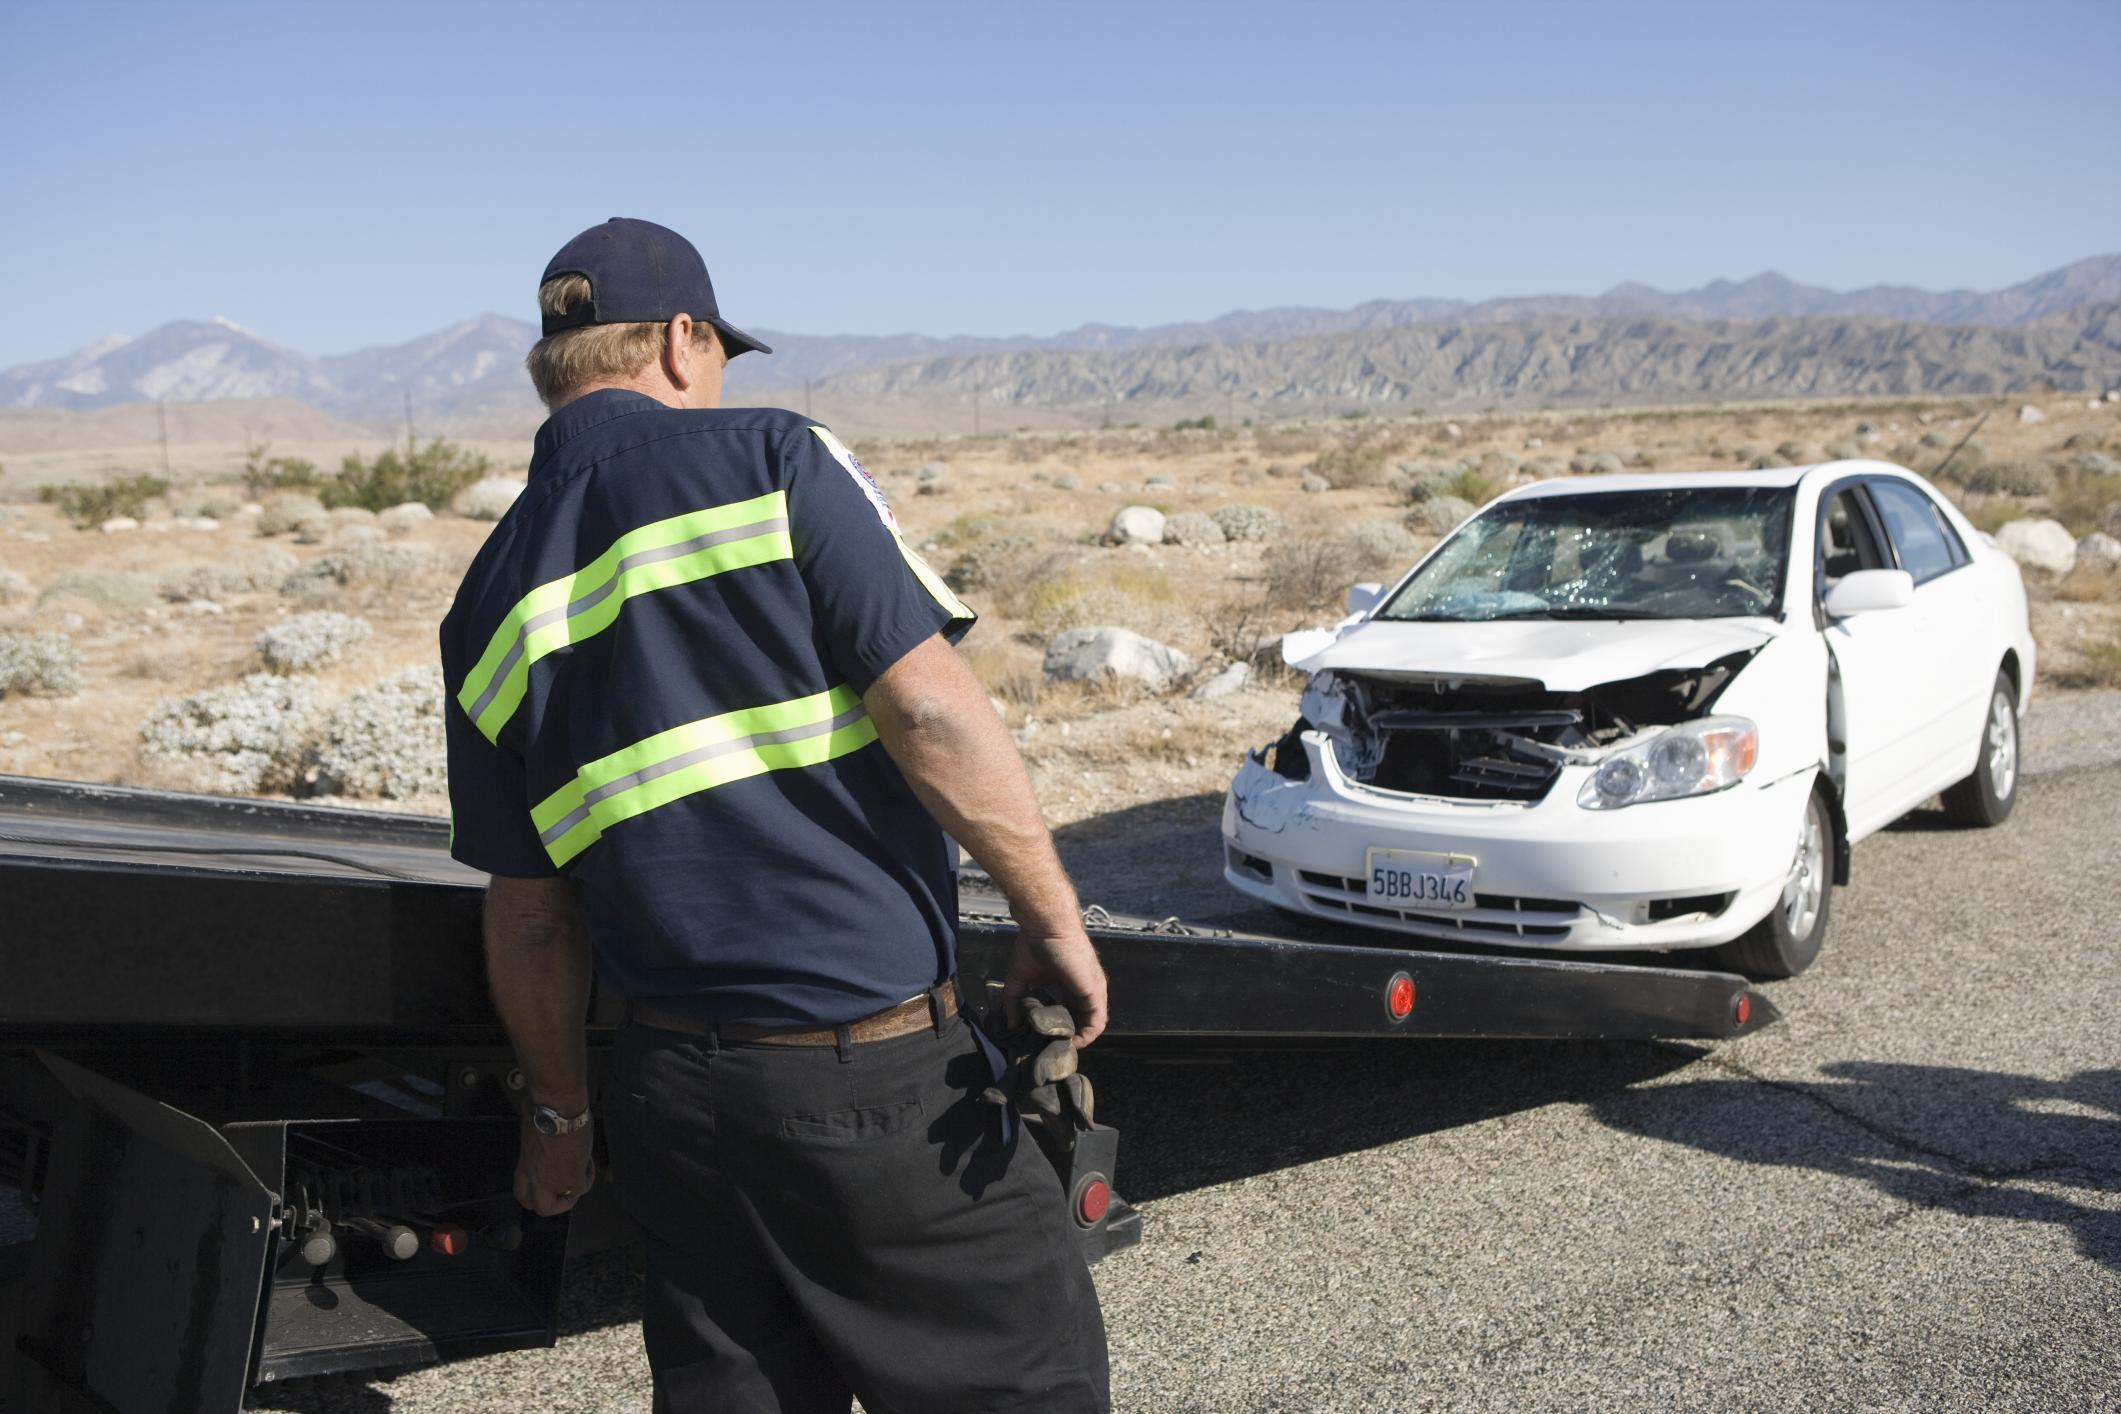 This is a picture of a 24 hour roadside assistance.